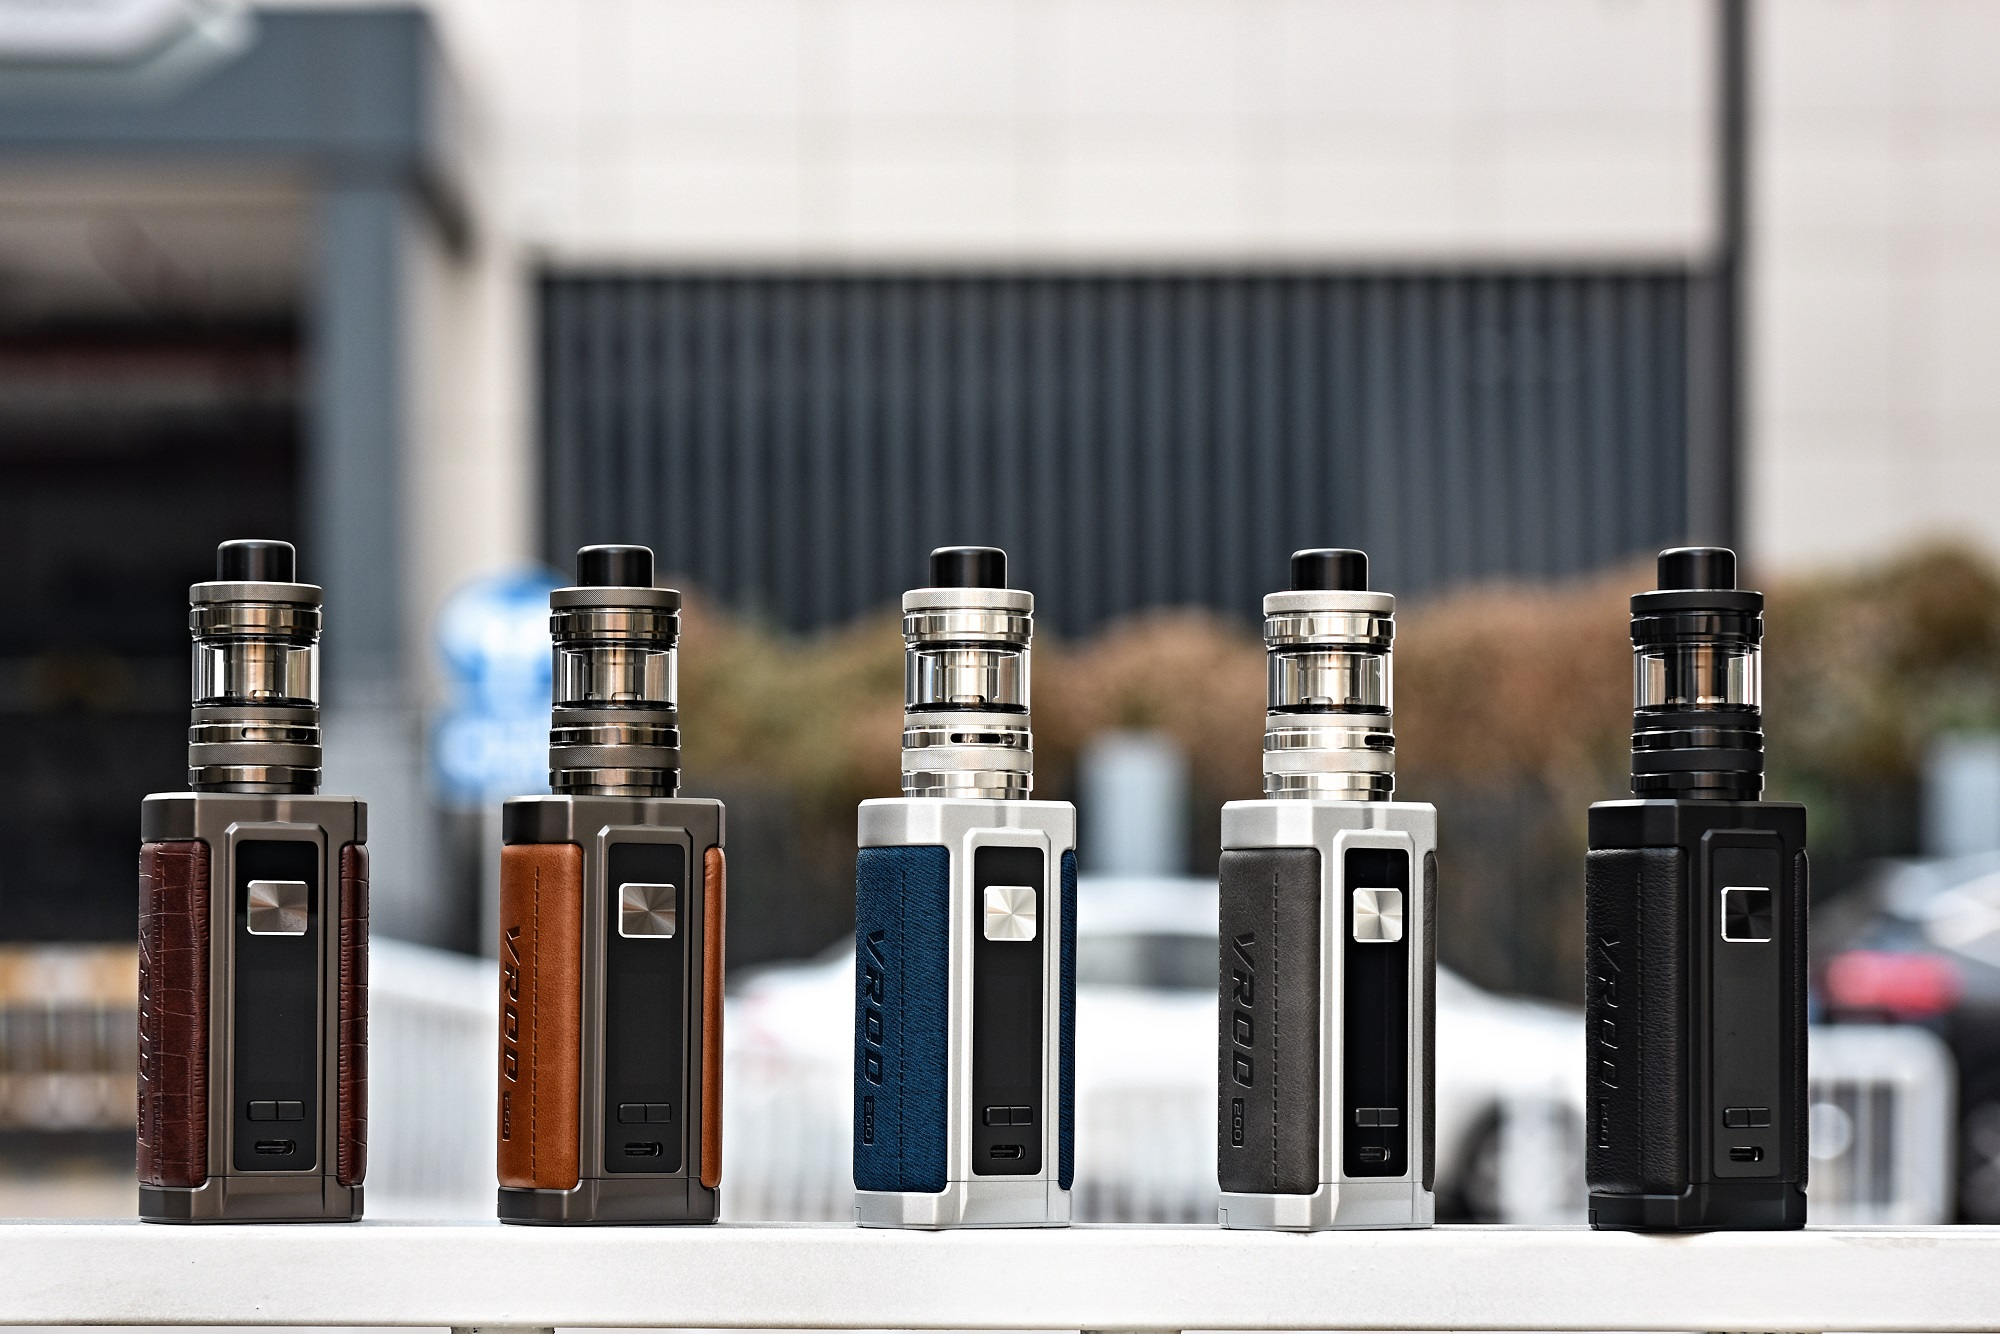 The Aspire Vrod 200: A New Super Powerful Sub-Ohm Kit